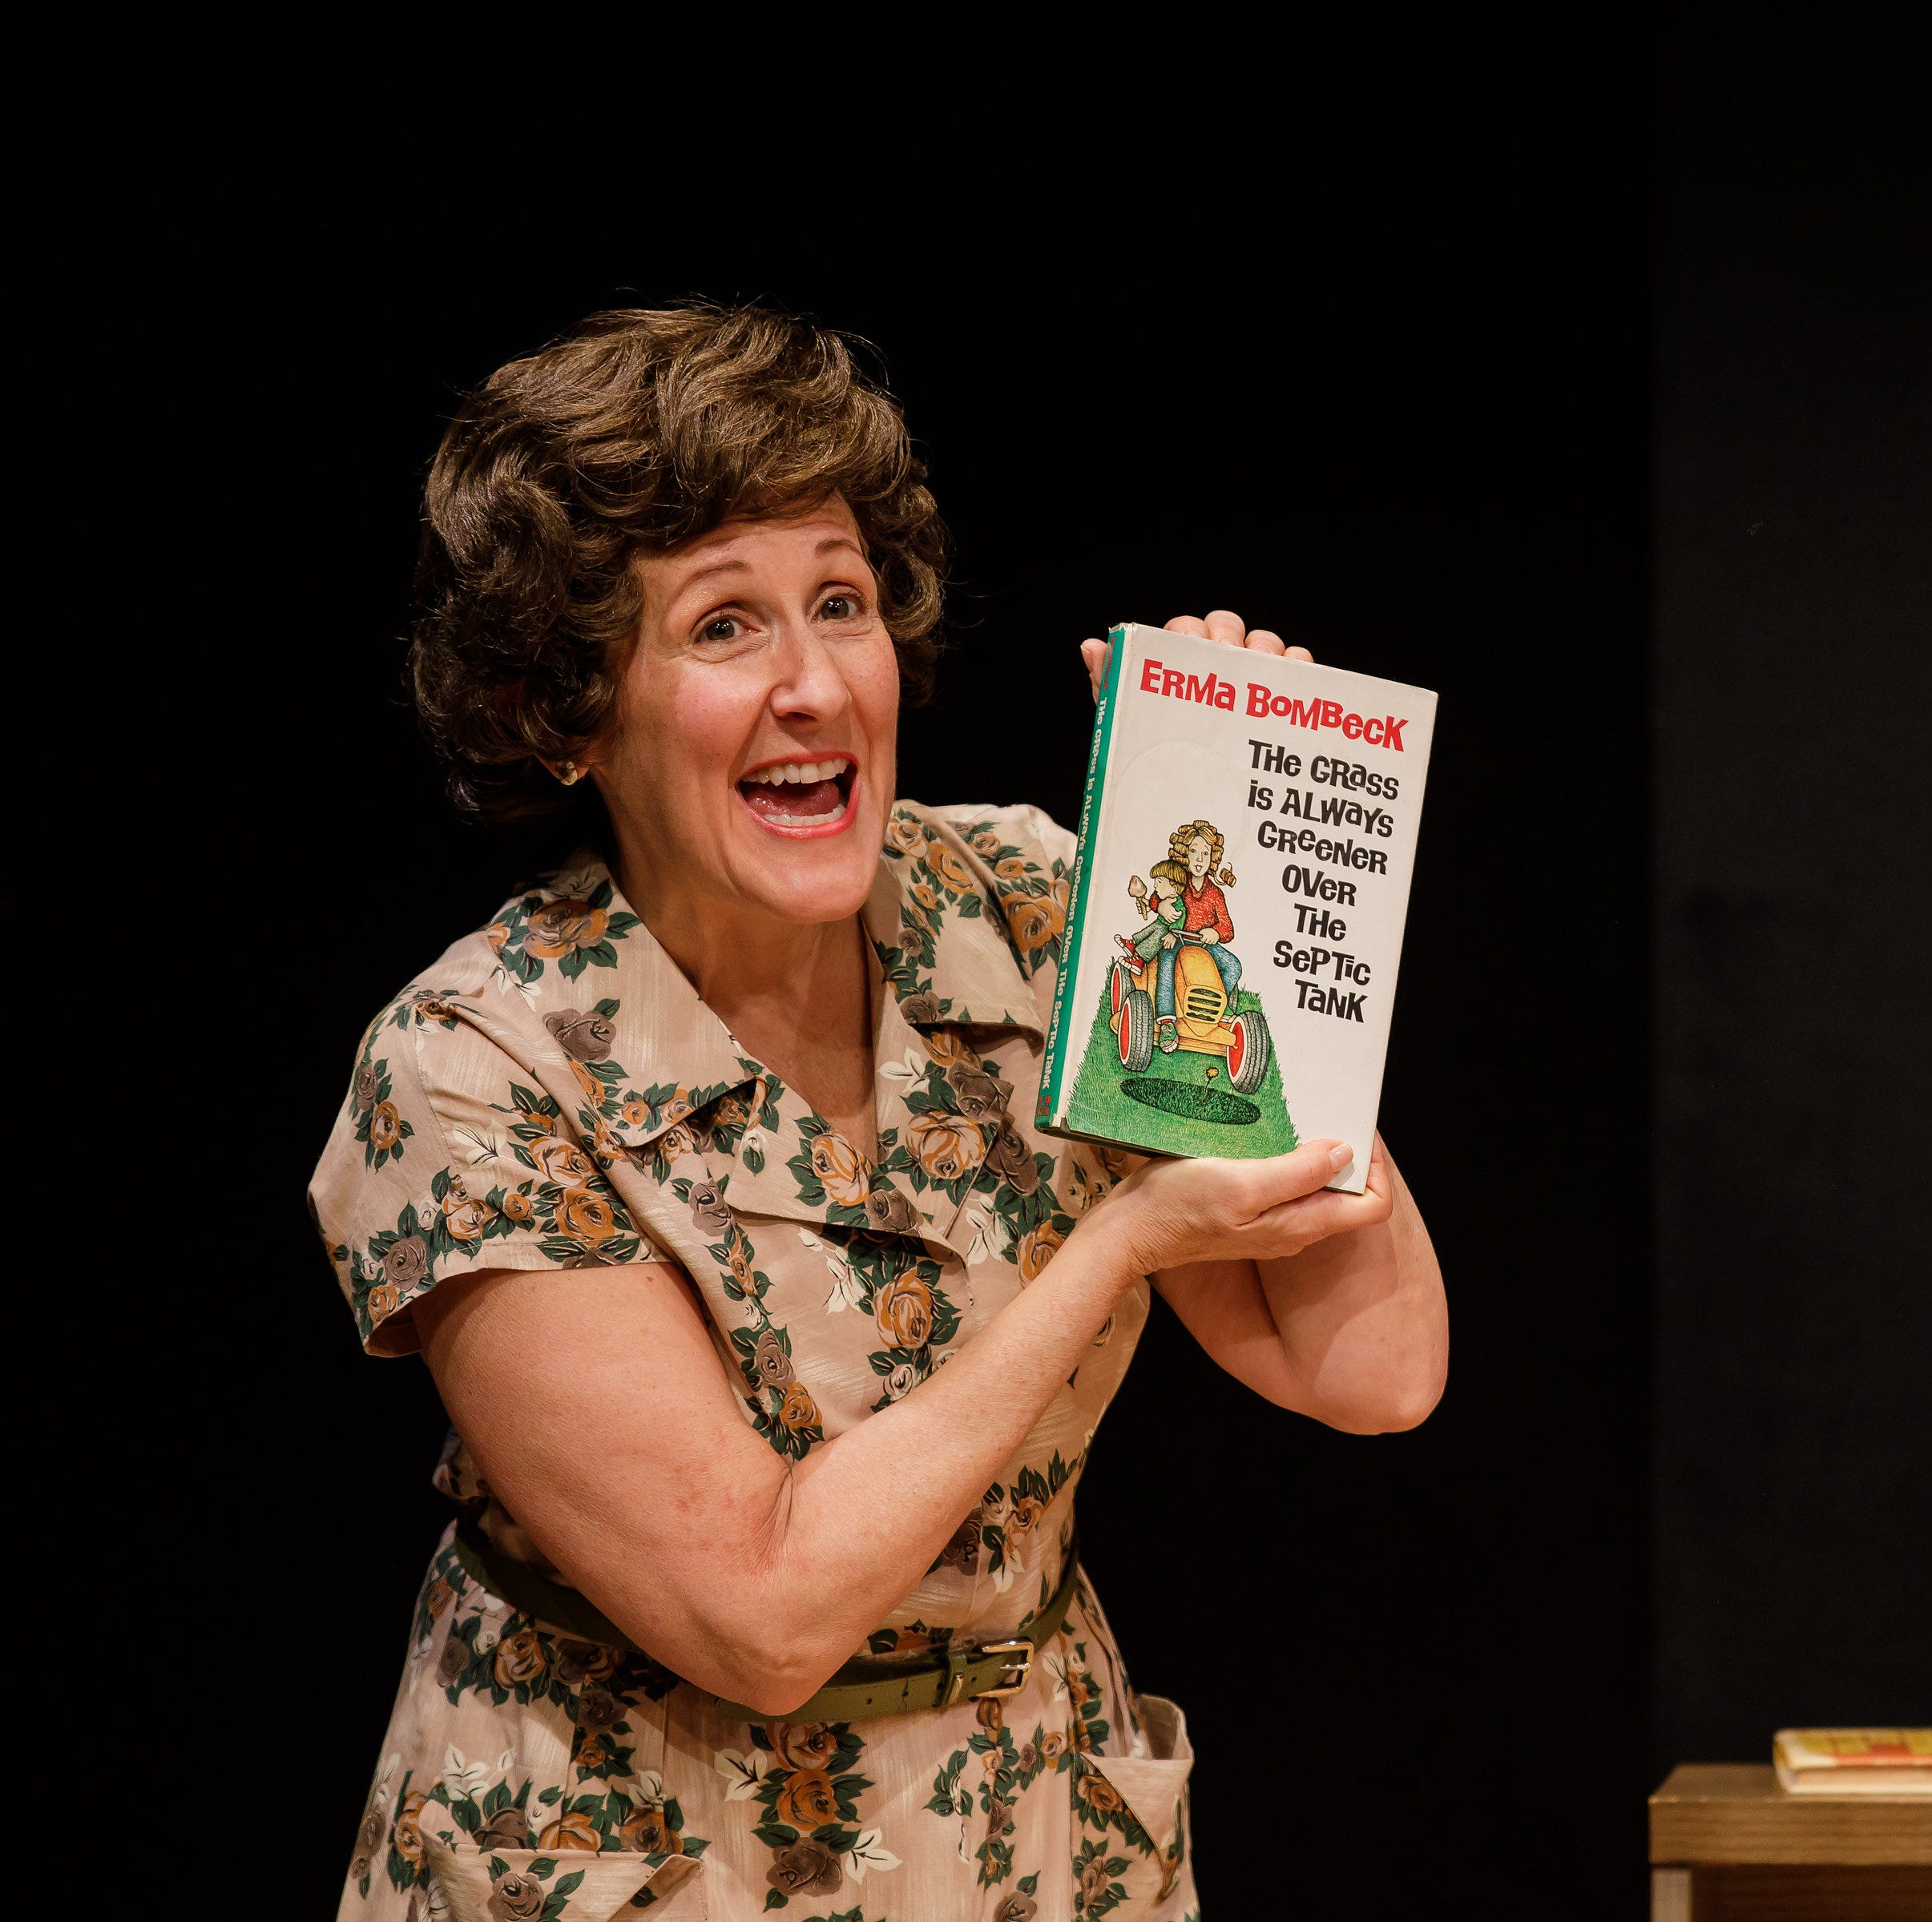 I'm playing Erma Bombeck again at Geva, and I'm terrified all over again